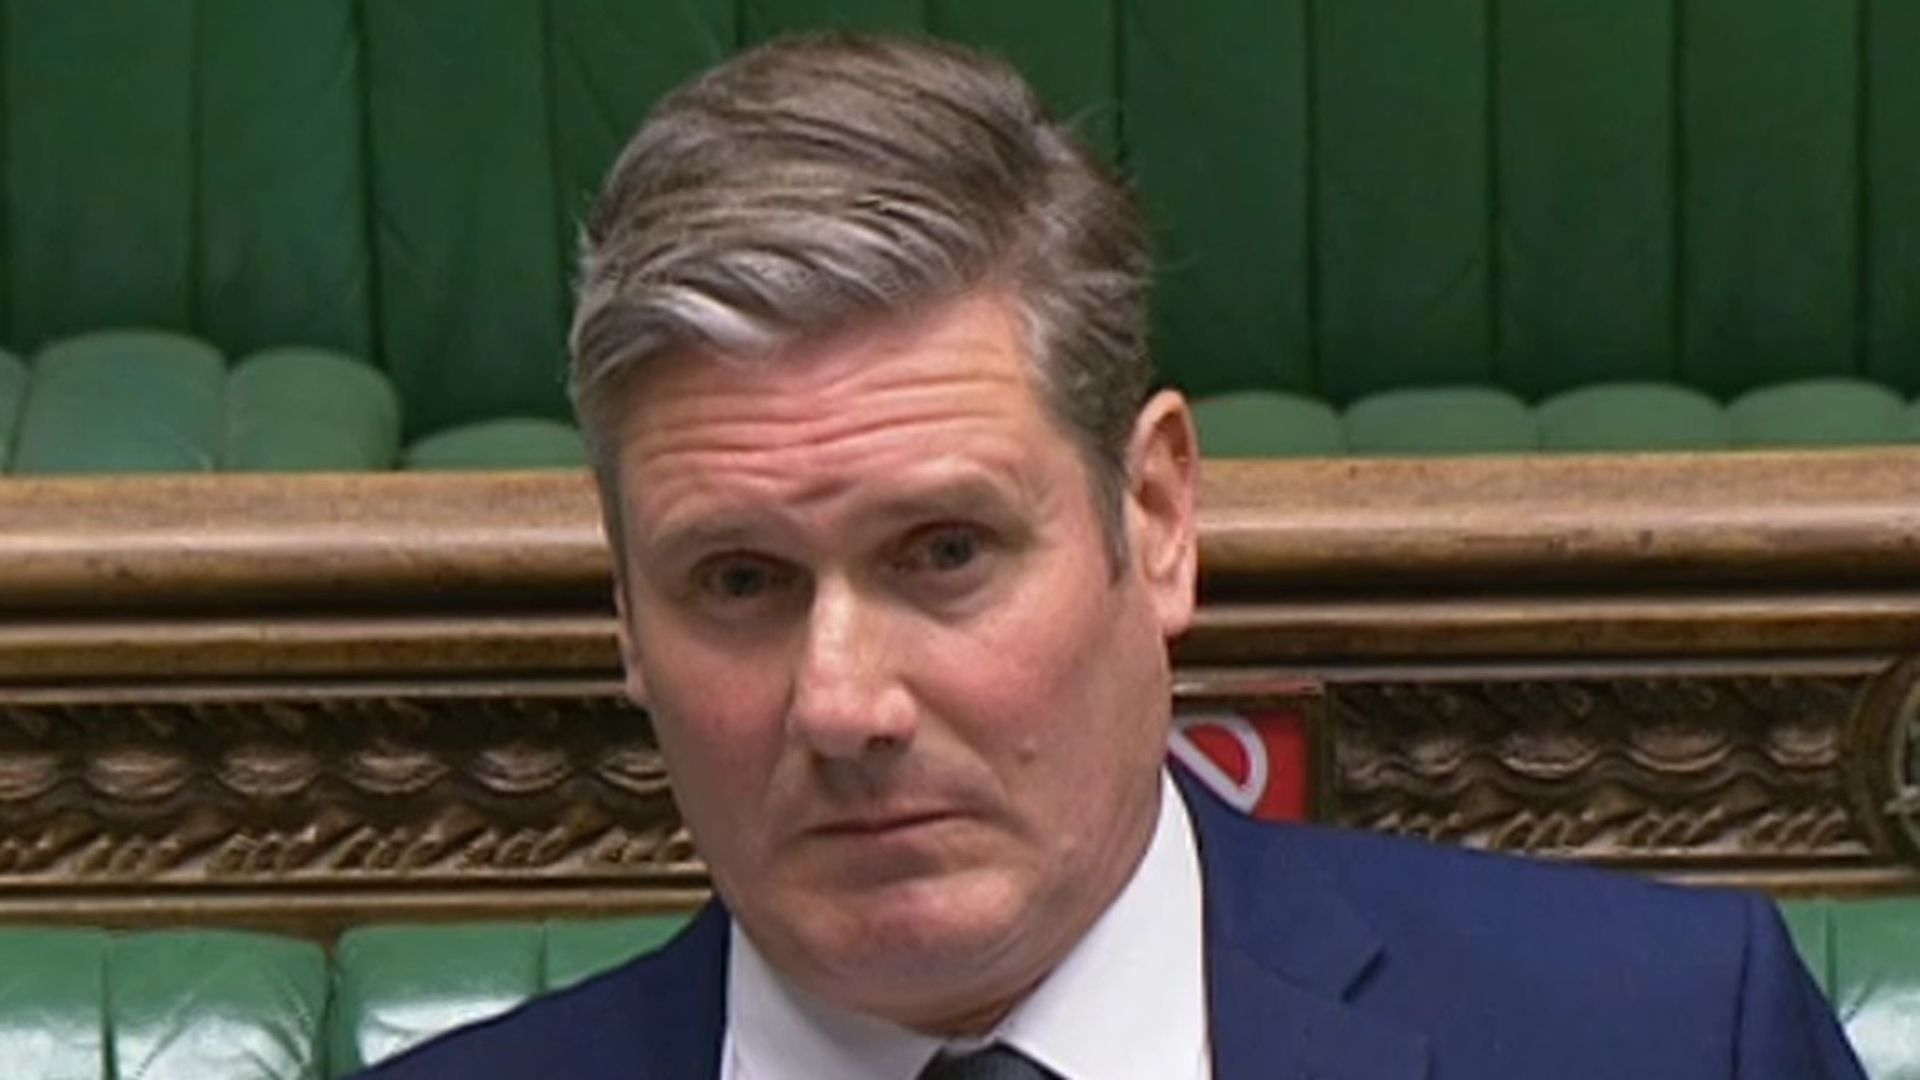 Labour leader Sir Keir Starmer appearing at prime minister's questions in the House of Commons - Credit: Parliament